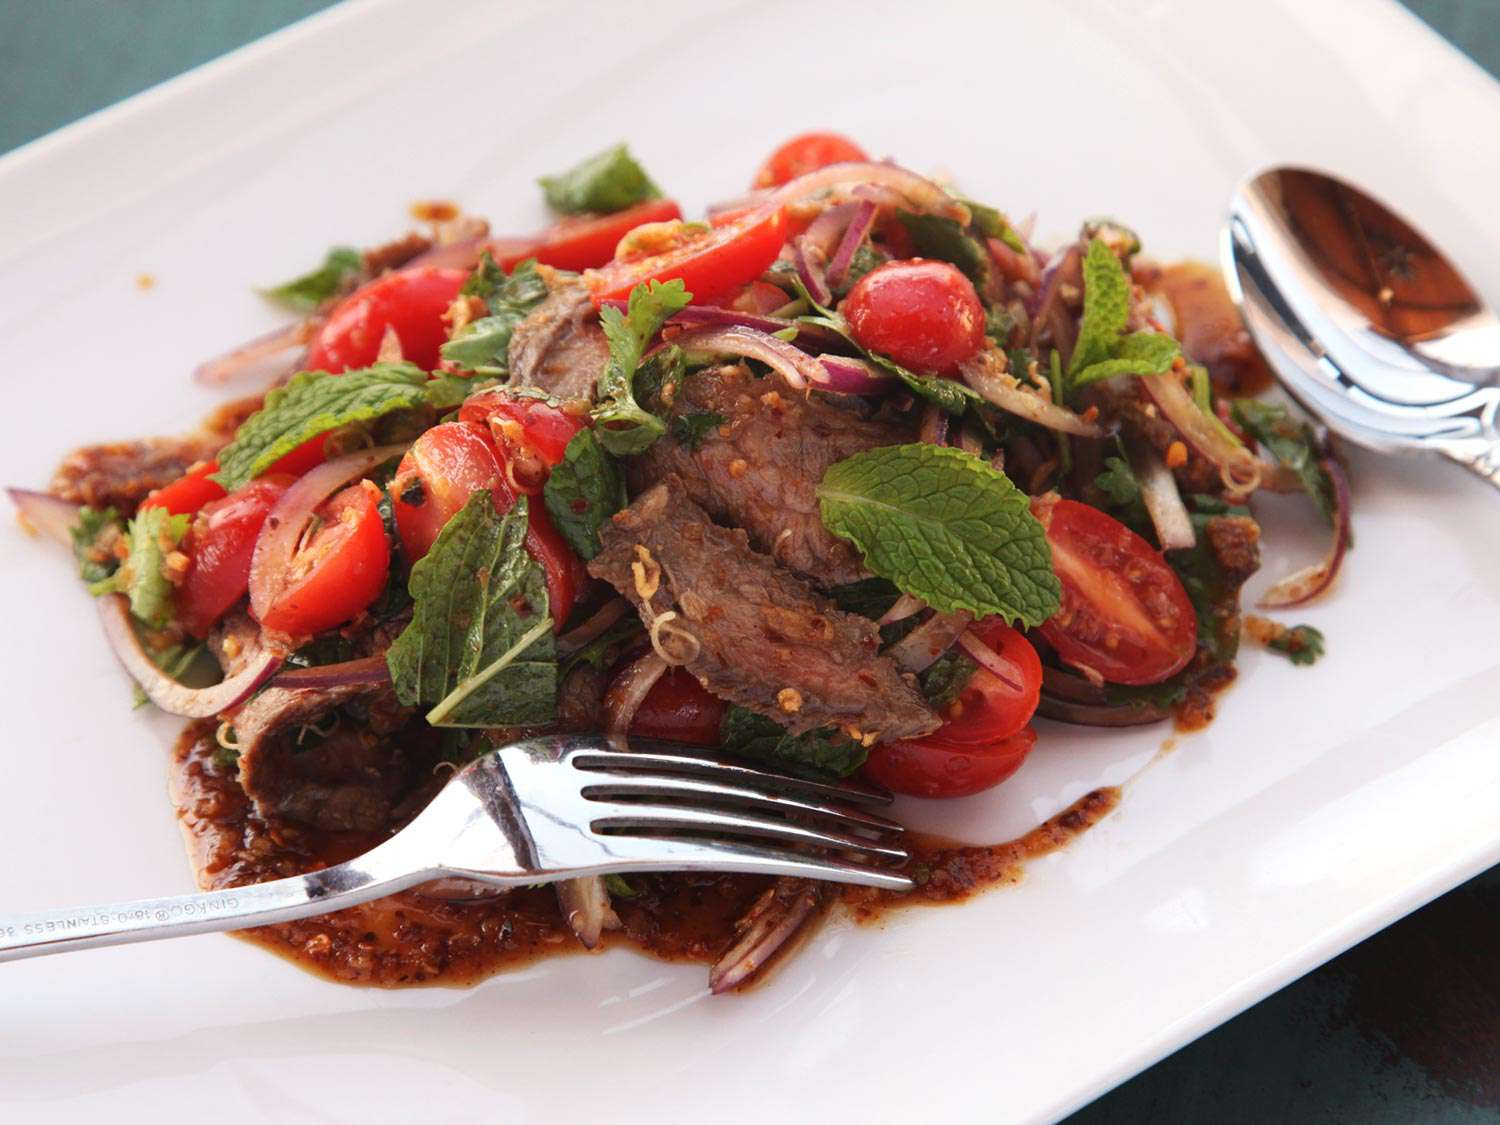 Isan Thai steak salad with tomatoes, onions, mint leaves, and spicy dressing, on a white plate